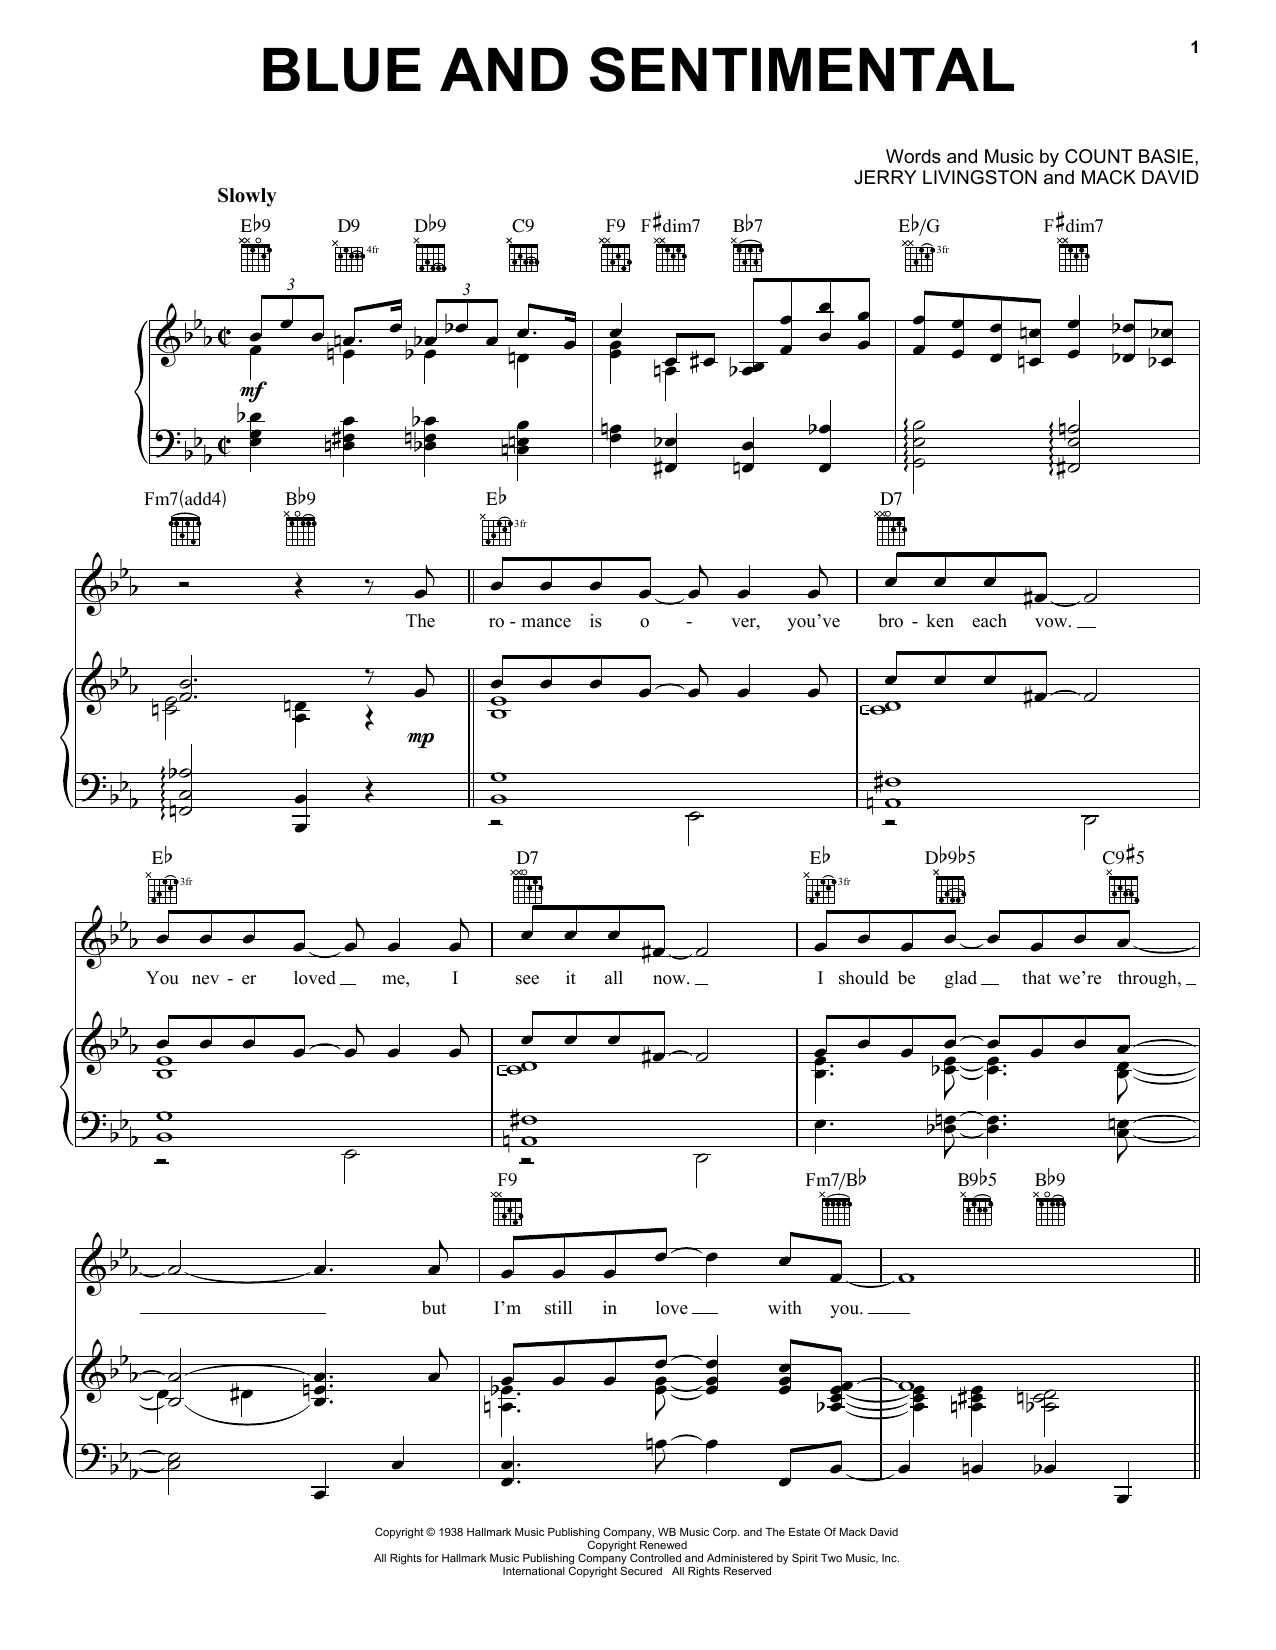 Count Basie Blue And Sentimental sheet music notes and chords. Download Printable PDF.